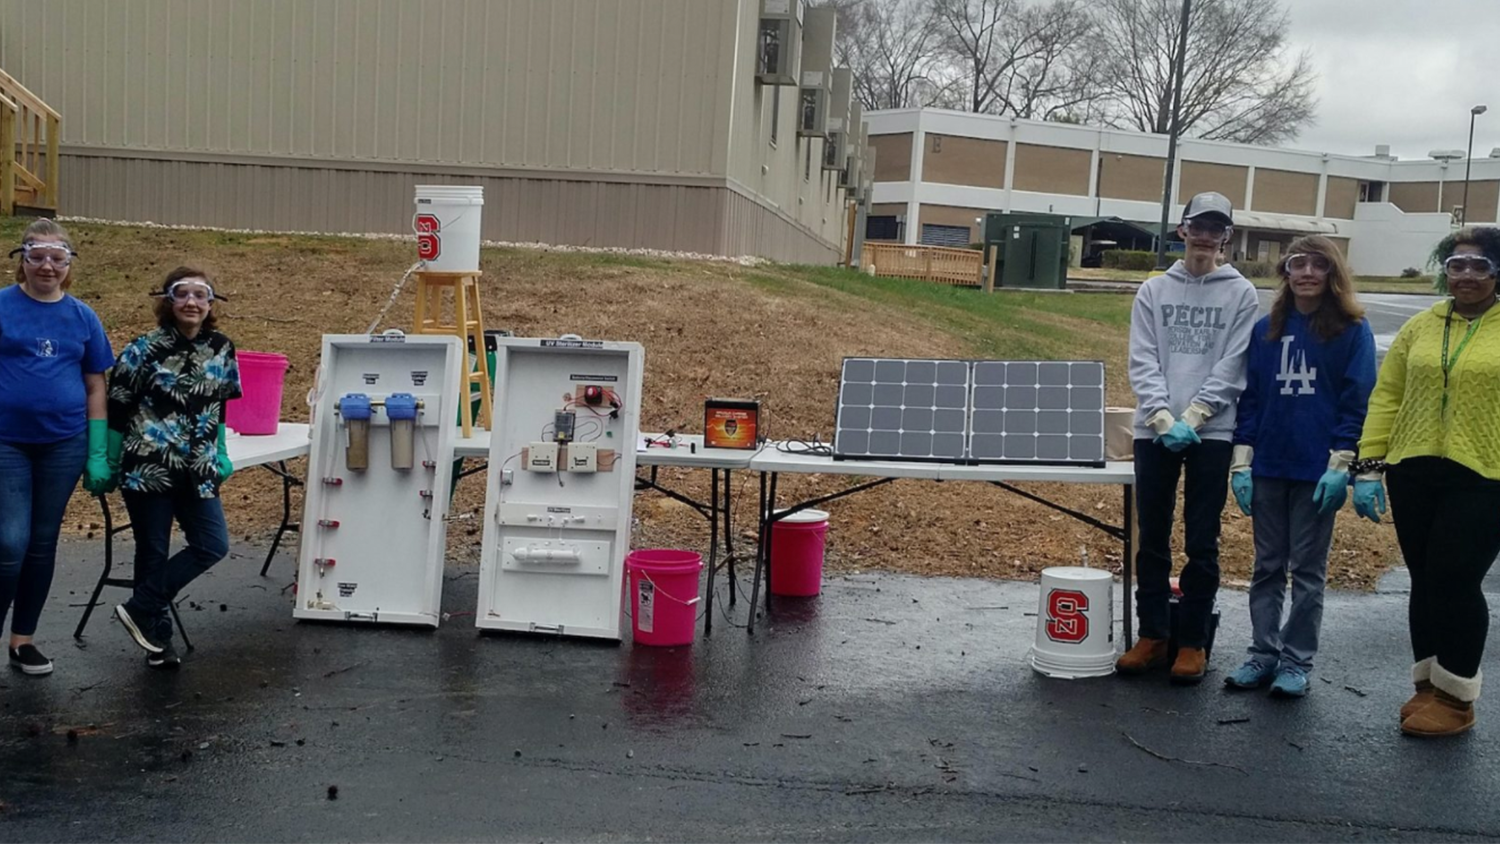 During the showcase, a team of students under the direction of Person Early College for Innovation and Leadership's engineering teacher, David Price, created a UV water treatment system.